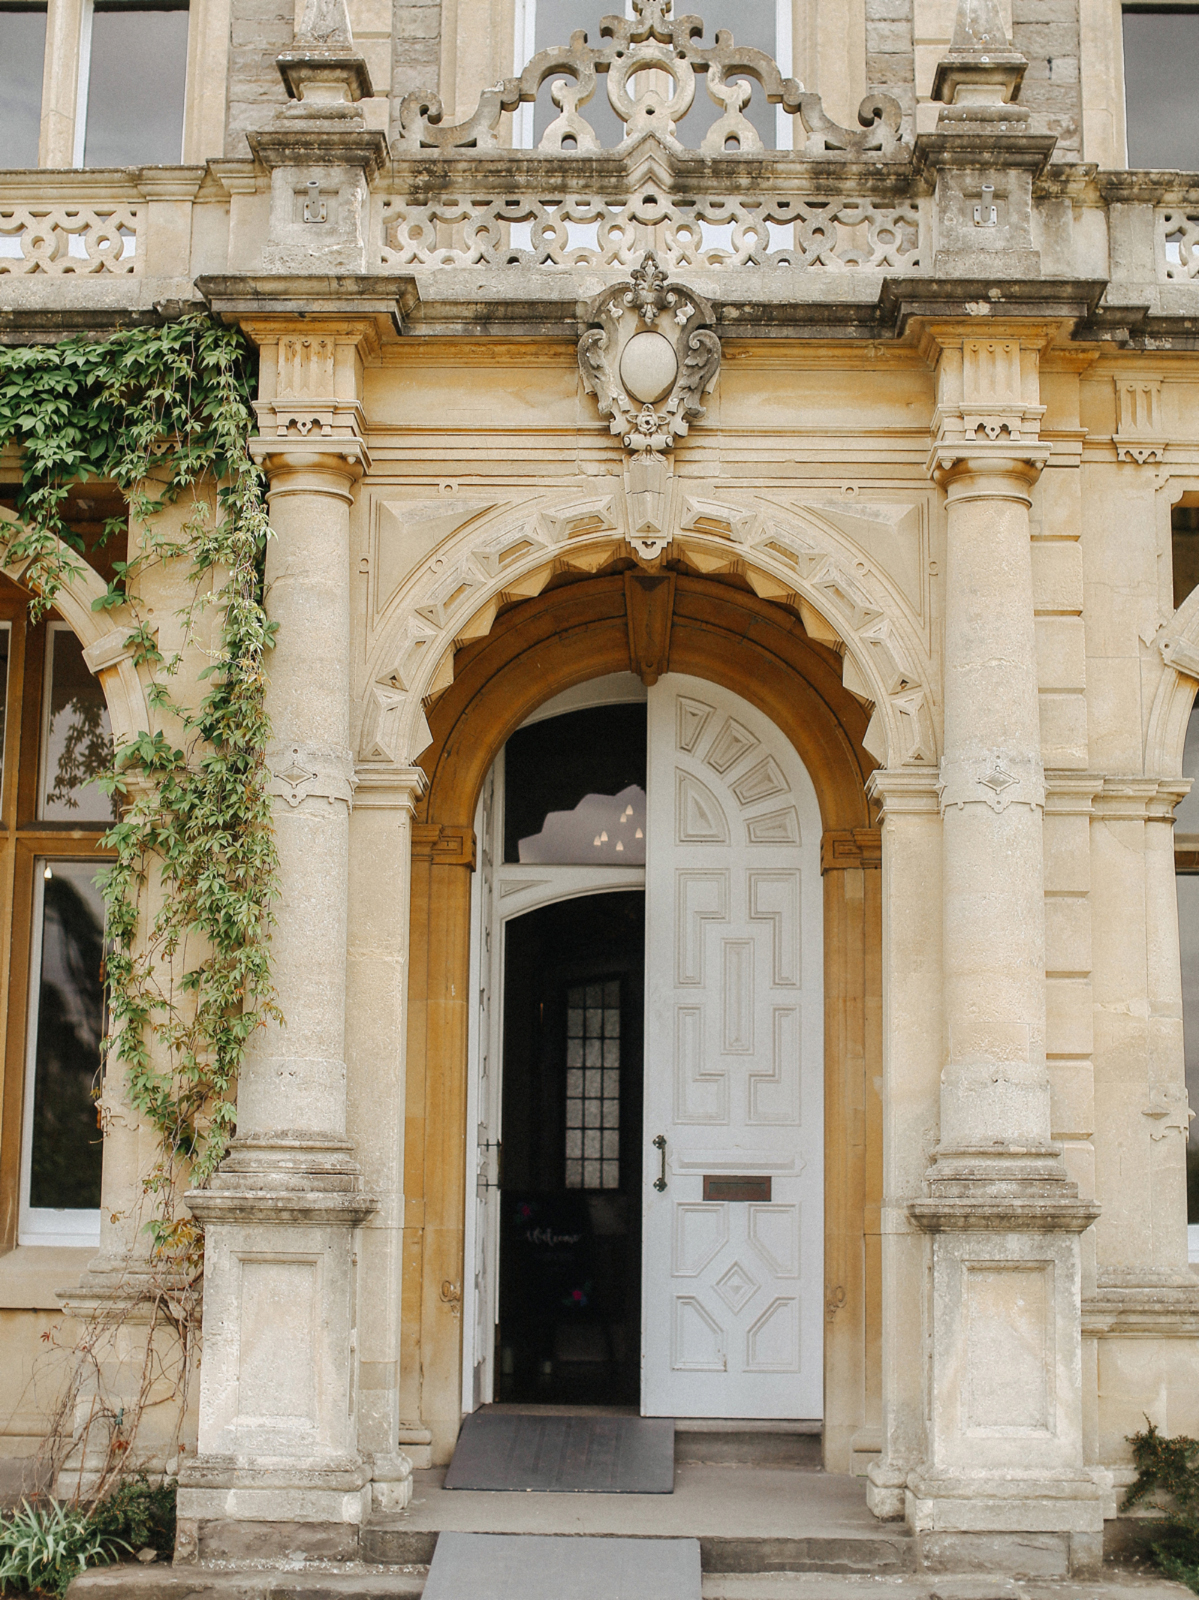 Clevedon Hall wedding venue in Somerset - A Caroline Castigliano Gown for a Chic and Classic Manor House Wedding in Shades of Peach